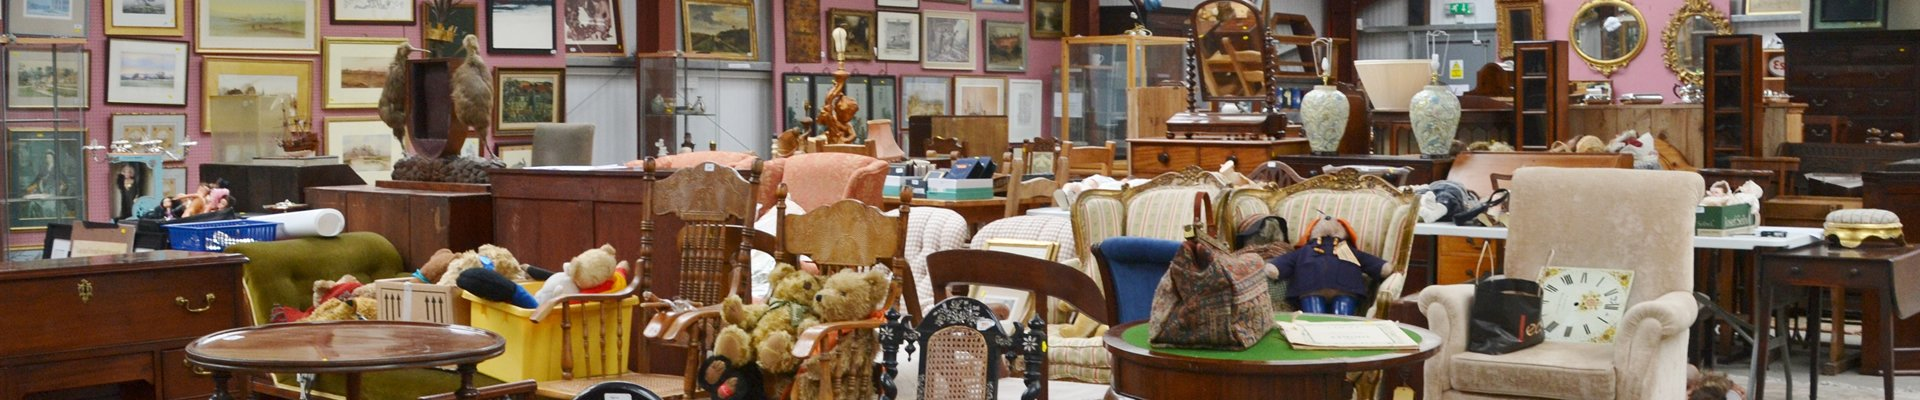 Jubilee Auction Rooms - Harrison Auctions Ltd